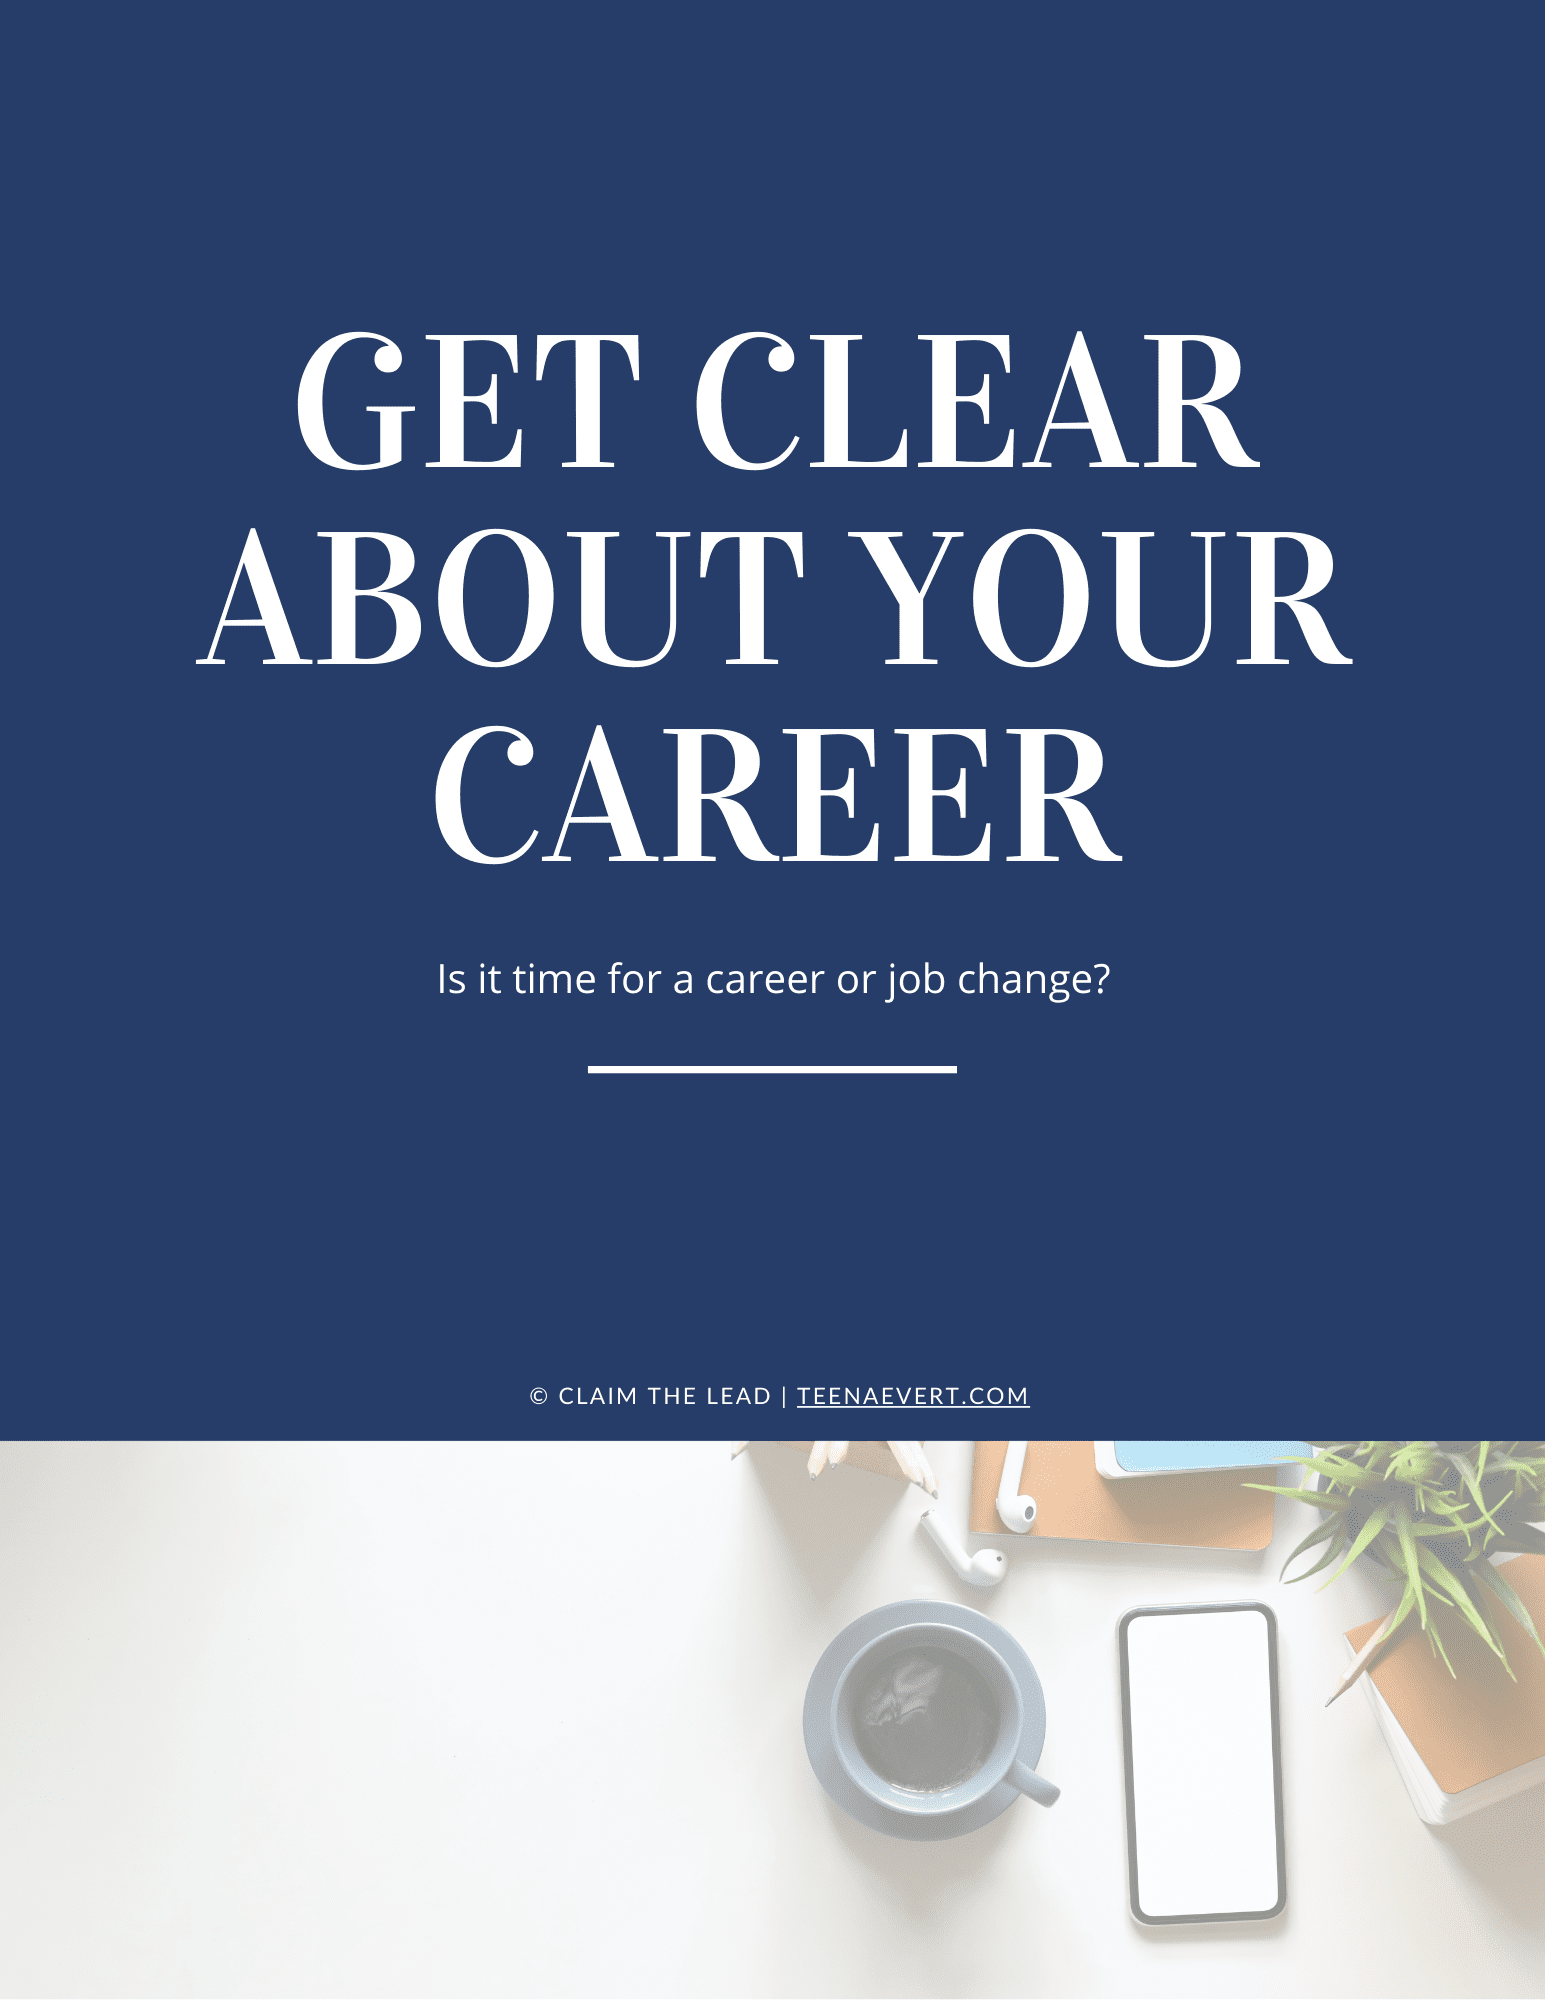 Get Clear About Your Career